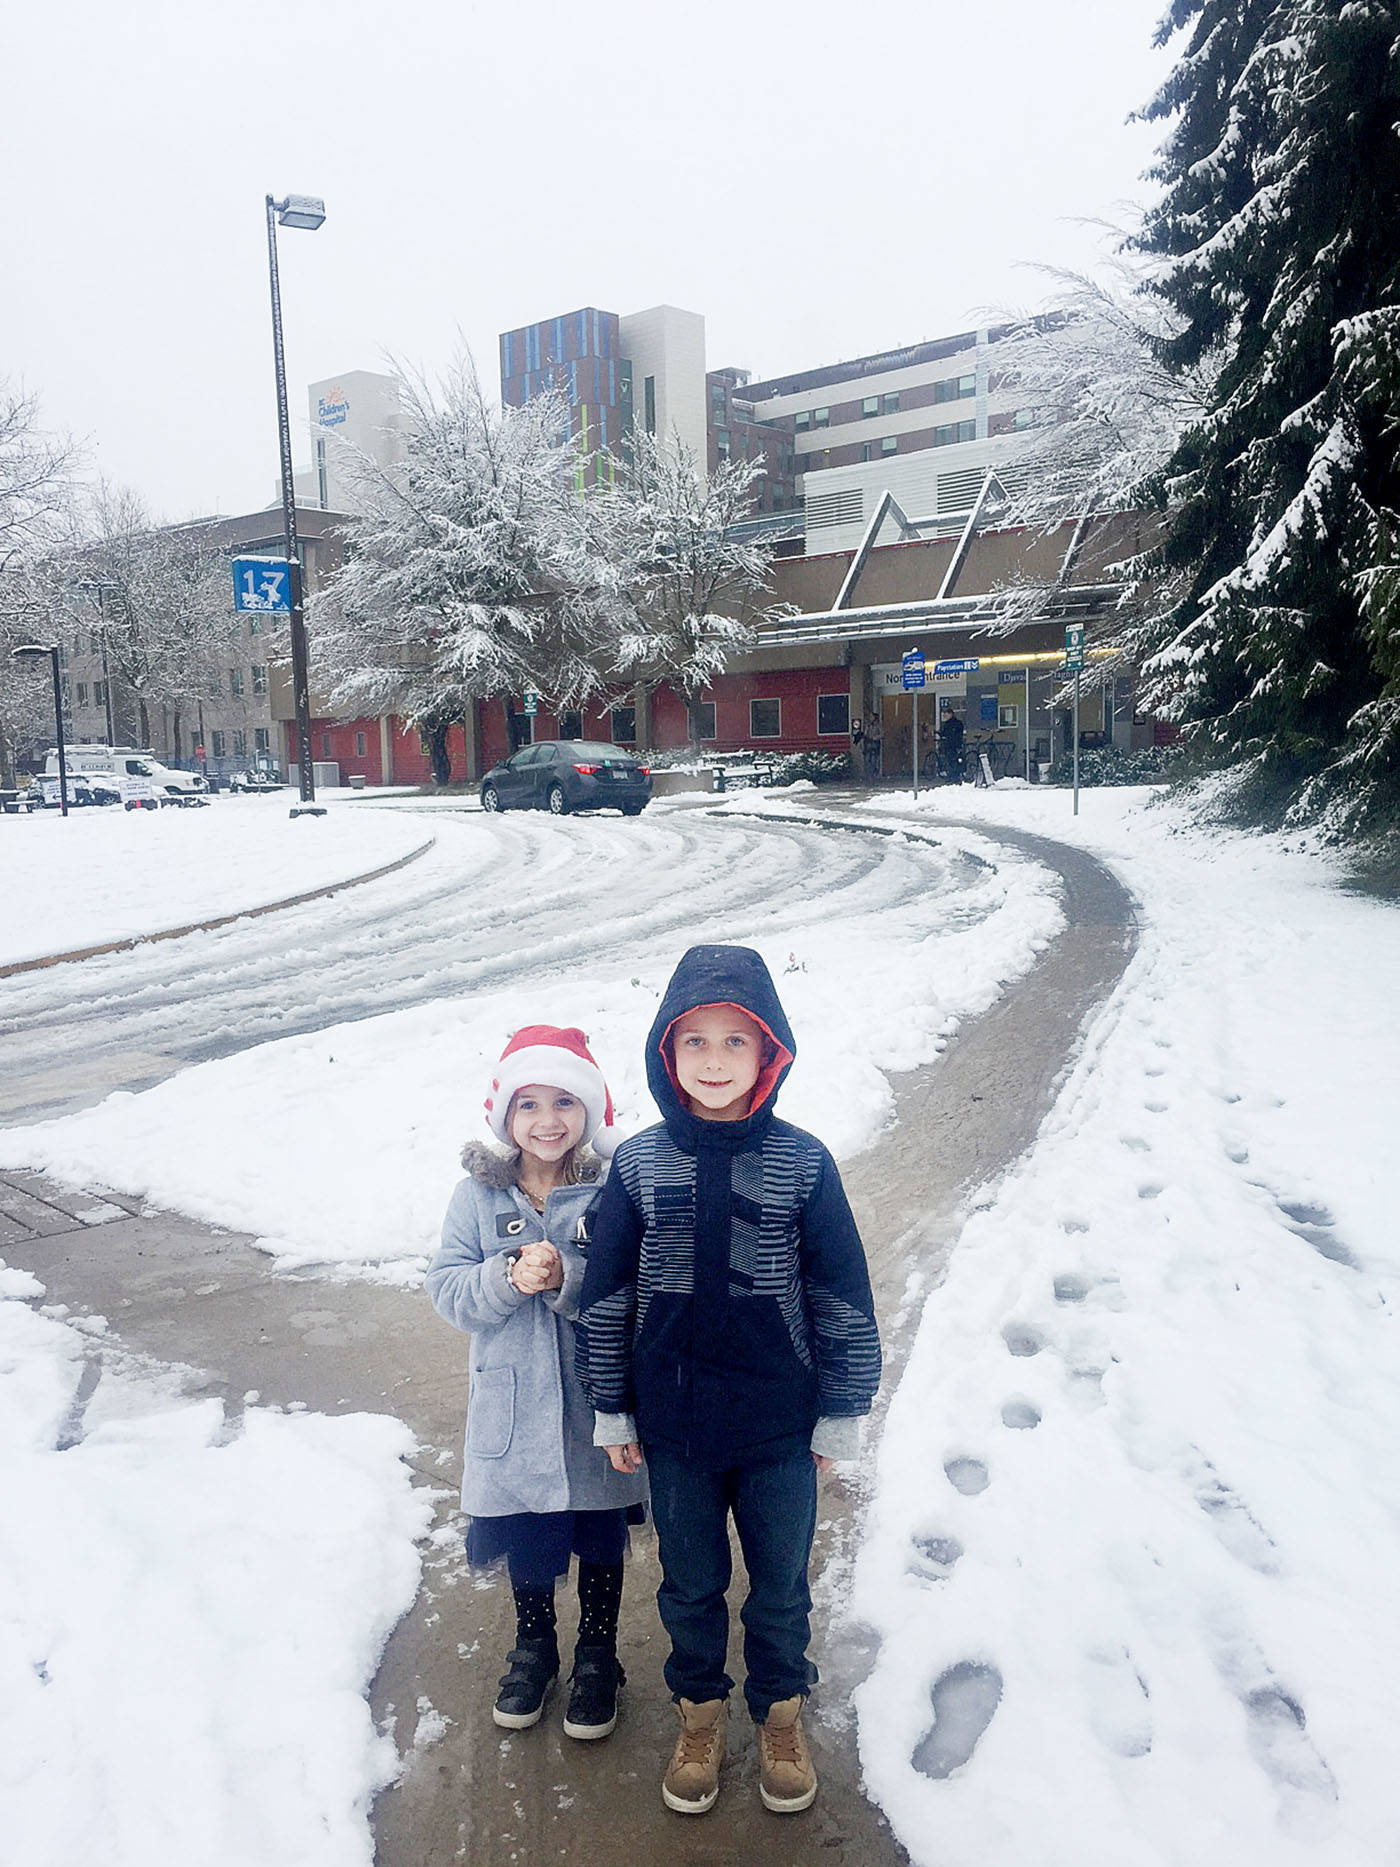 Siblings Kayla and Carson Walton stood near BC Children's Hospital, where the two joined their family to drop off presents for young patients on Tuesday, Dec. 19.